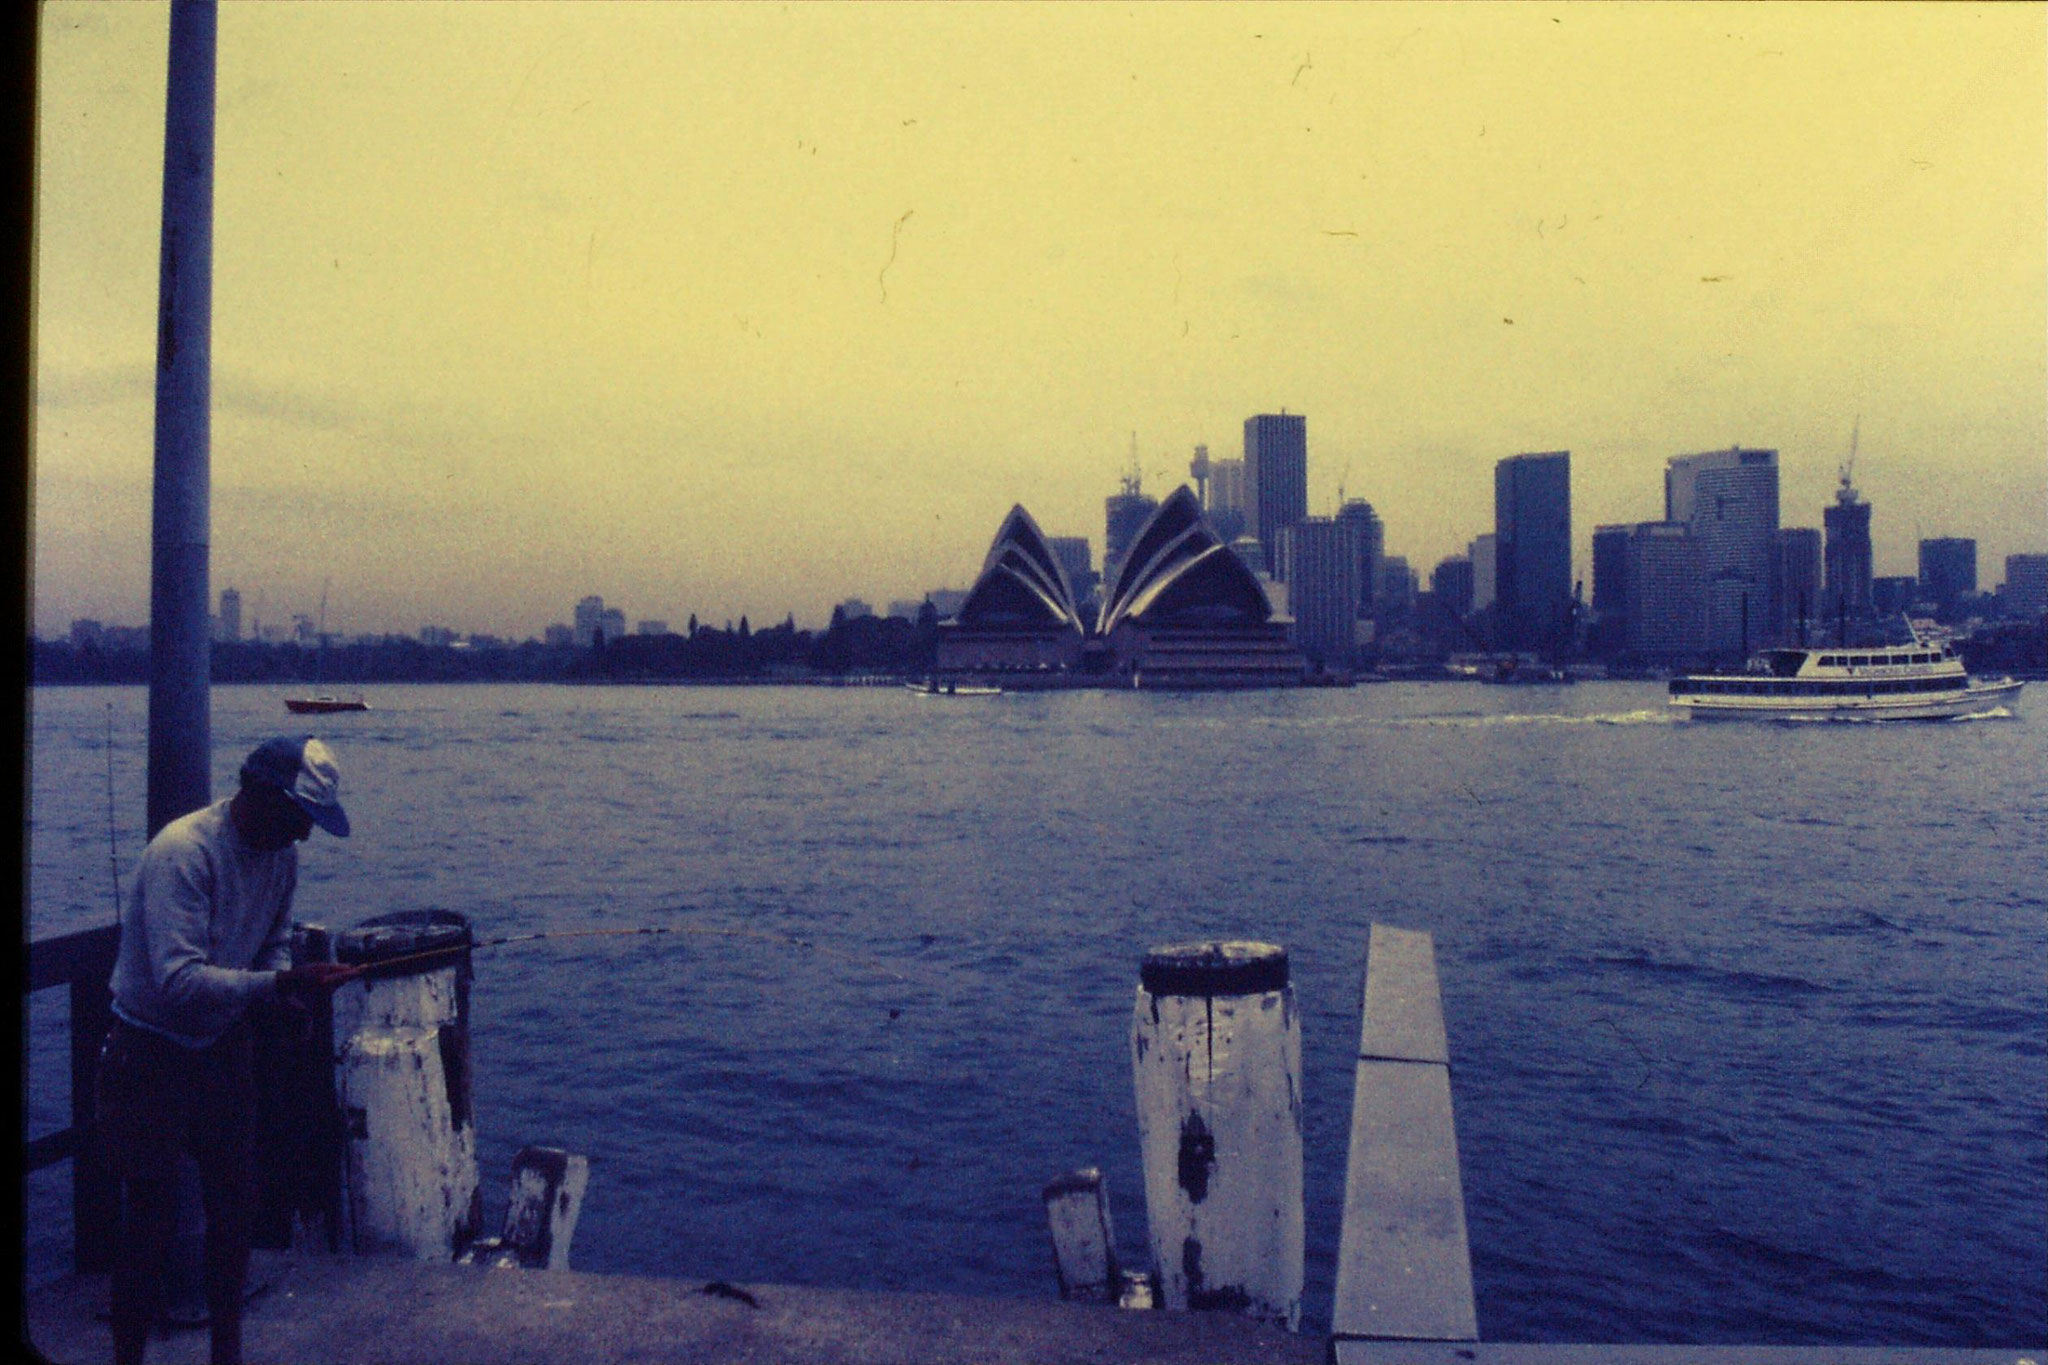 15/11/1990: 7: Sydney, Beulah St Wharf - Harbour Bridge and Opera